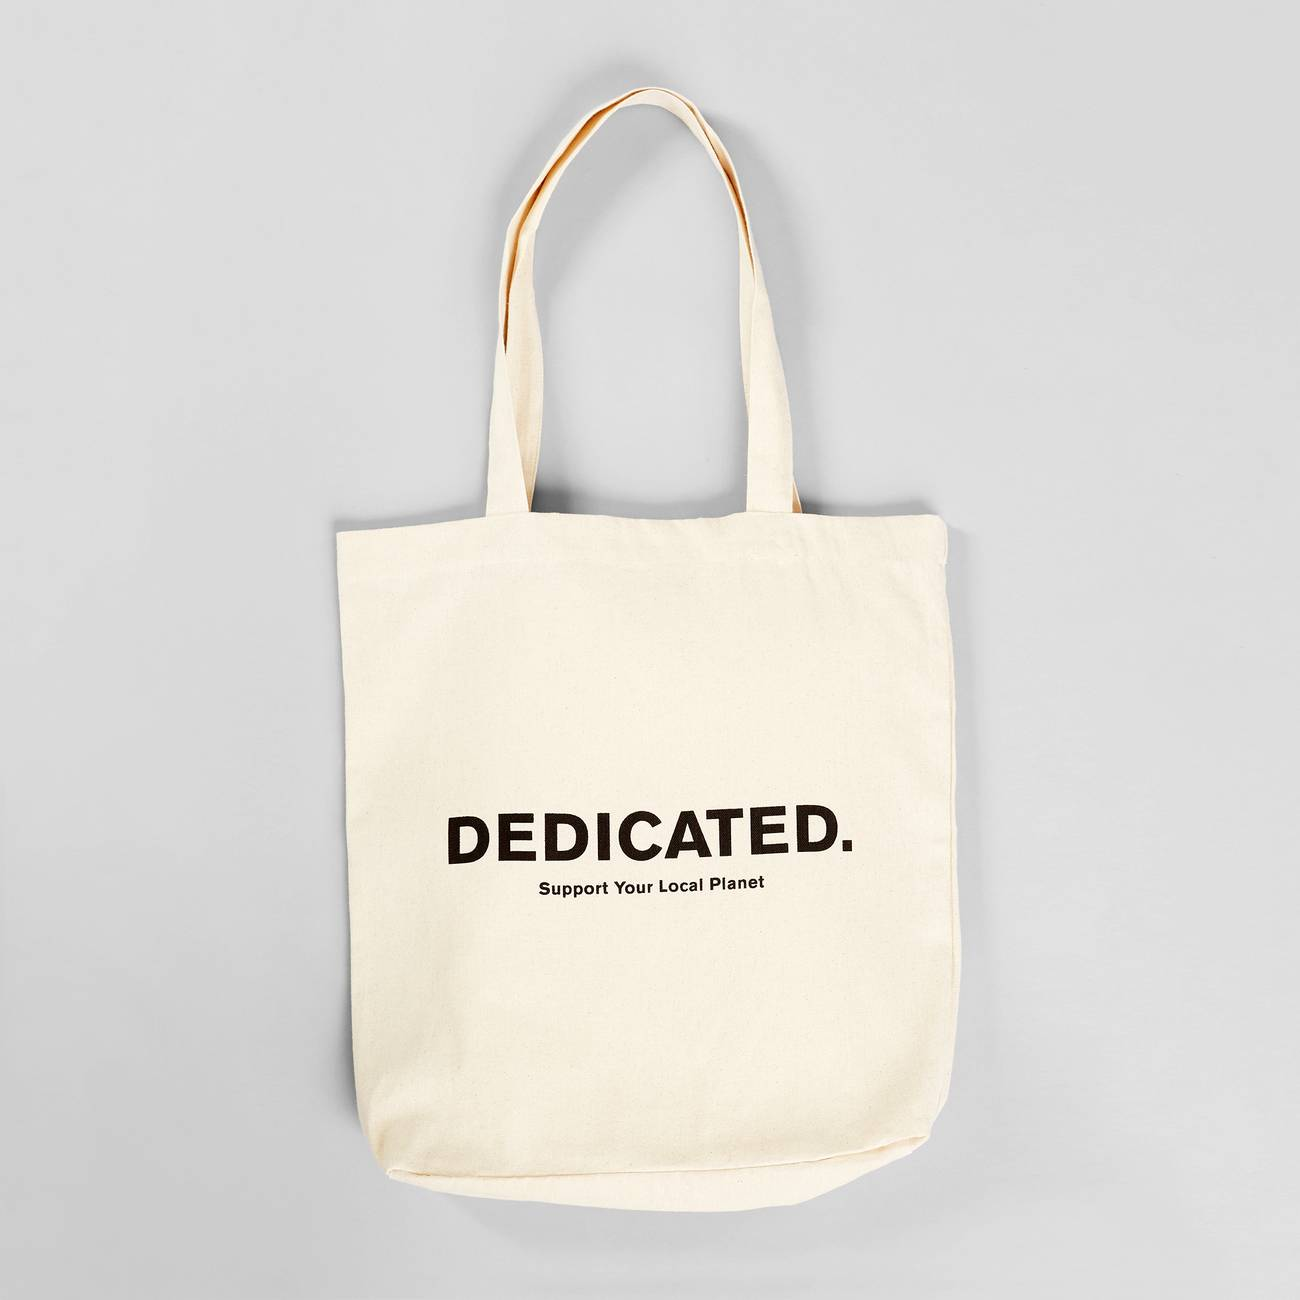 Dedicated - Tote Bag Torekov Save The Bees Off-White